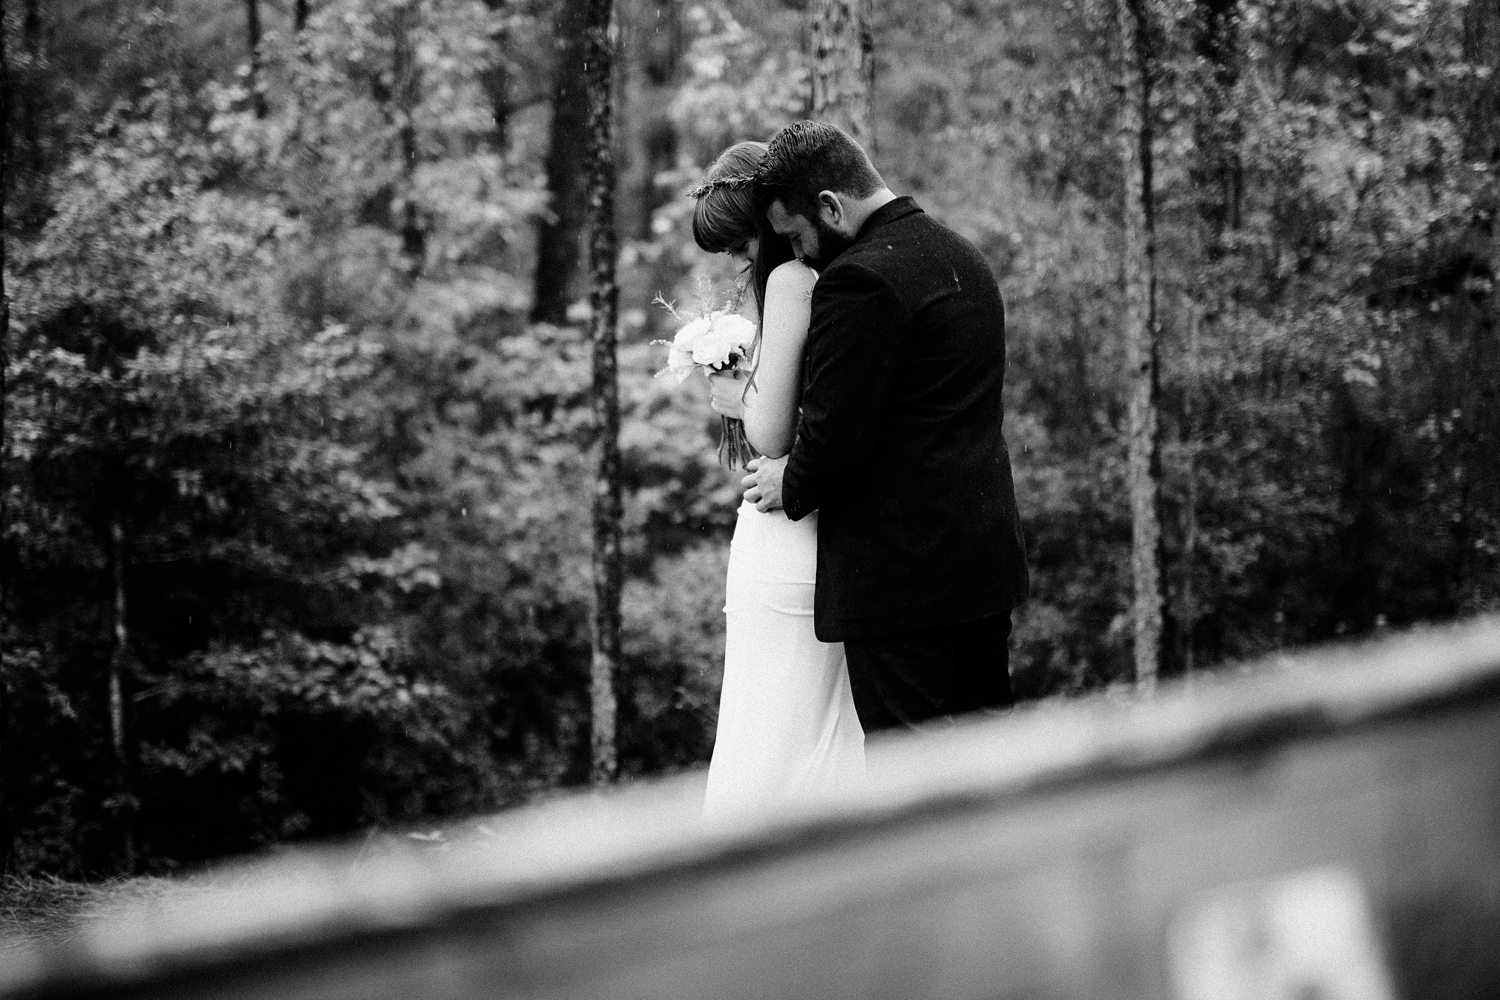 rainy-wedding-pictures-036